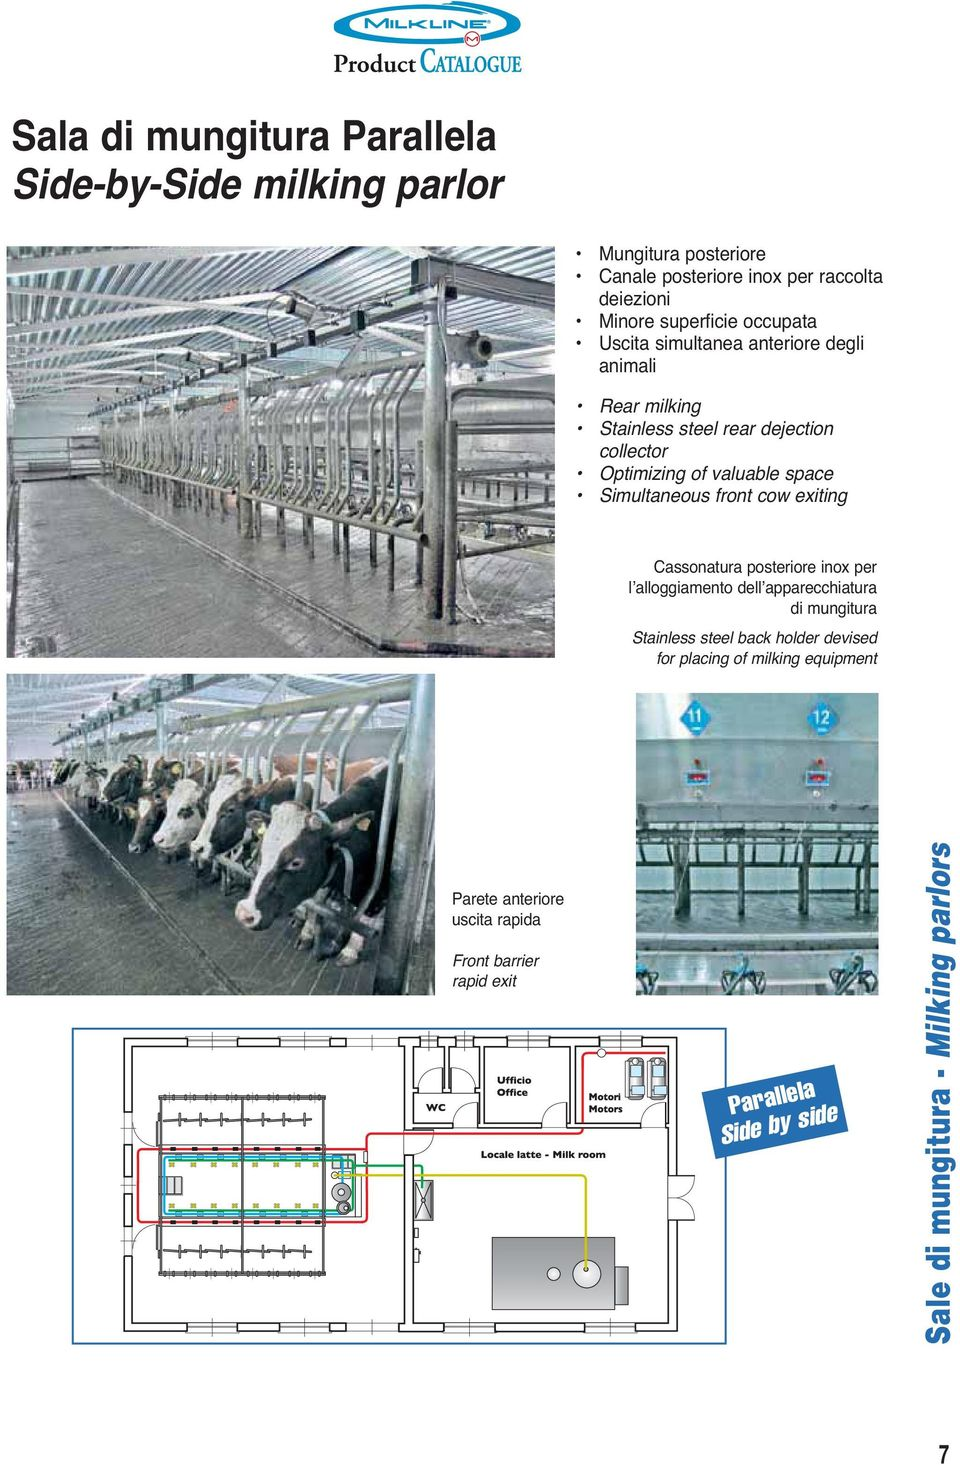 Simultaneous front cow exiting Cassonatura posteriore inox per l alloggiamento dell apparecchiatura di mungitura Stainless steel back holder